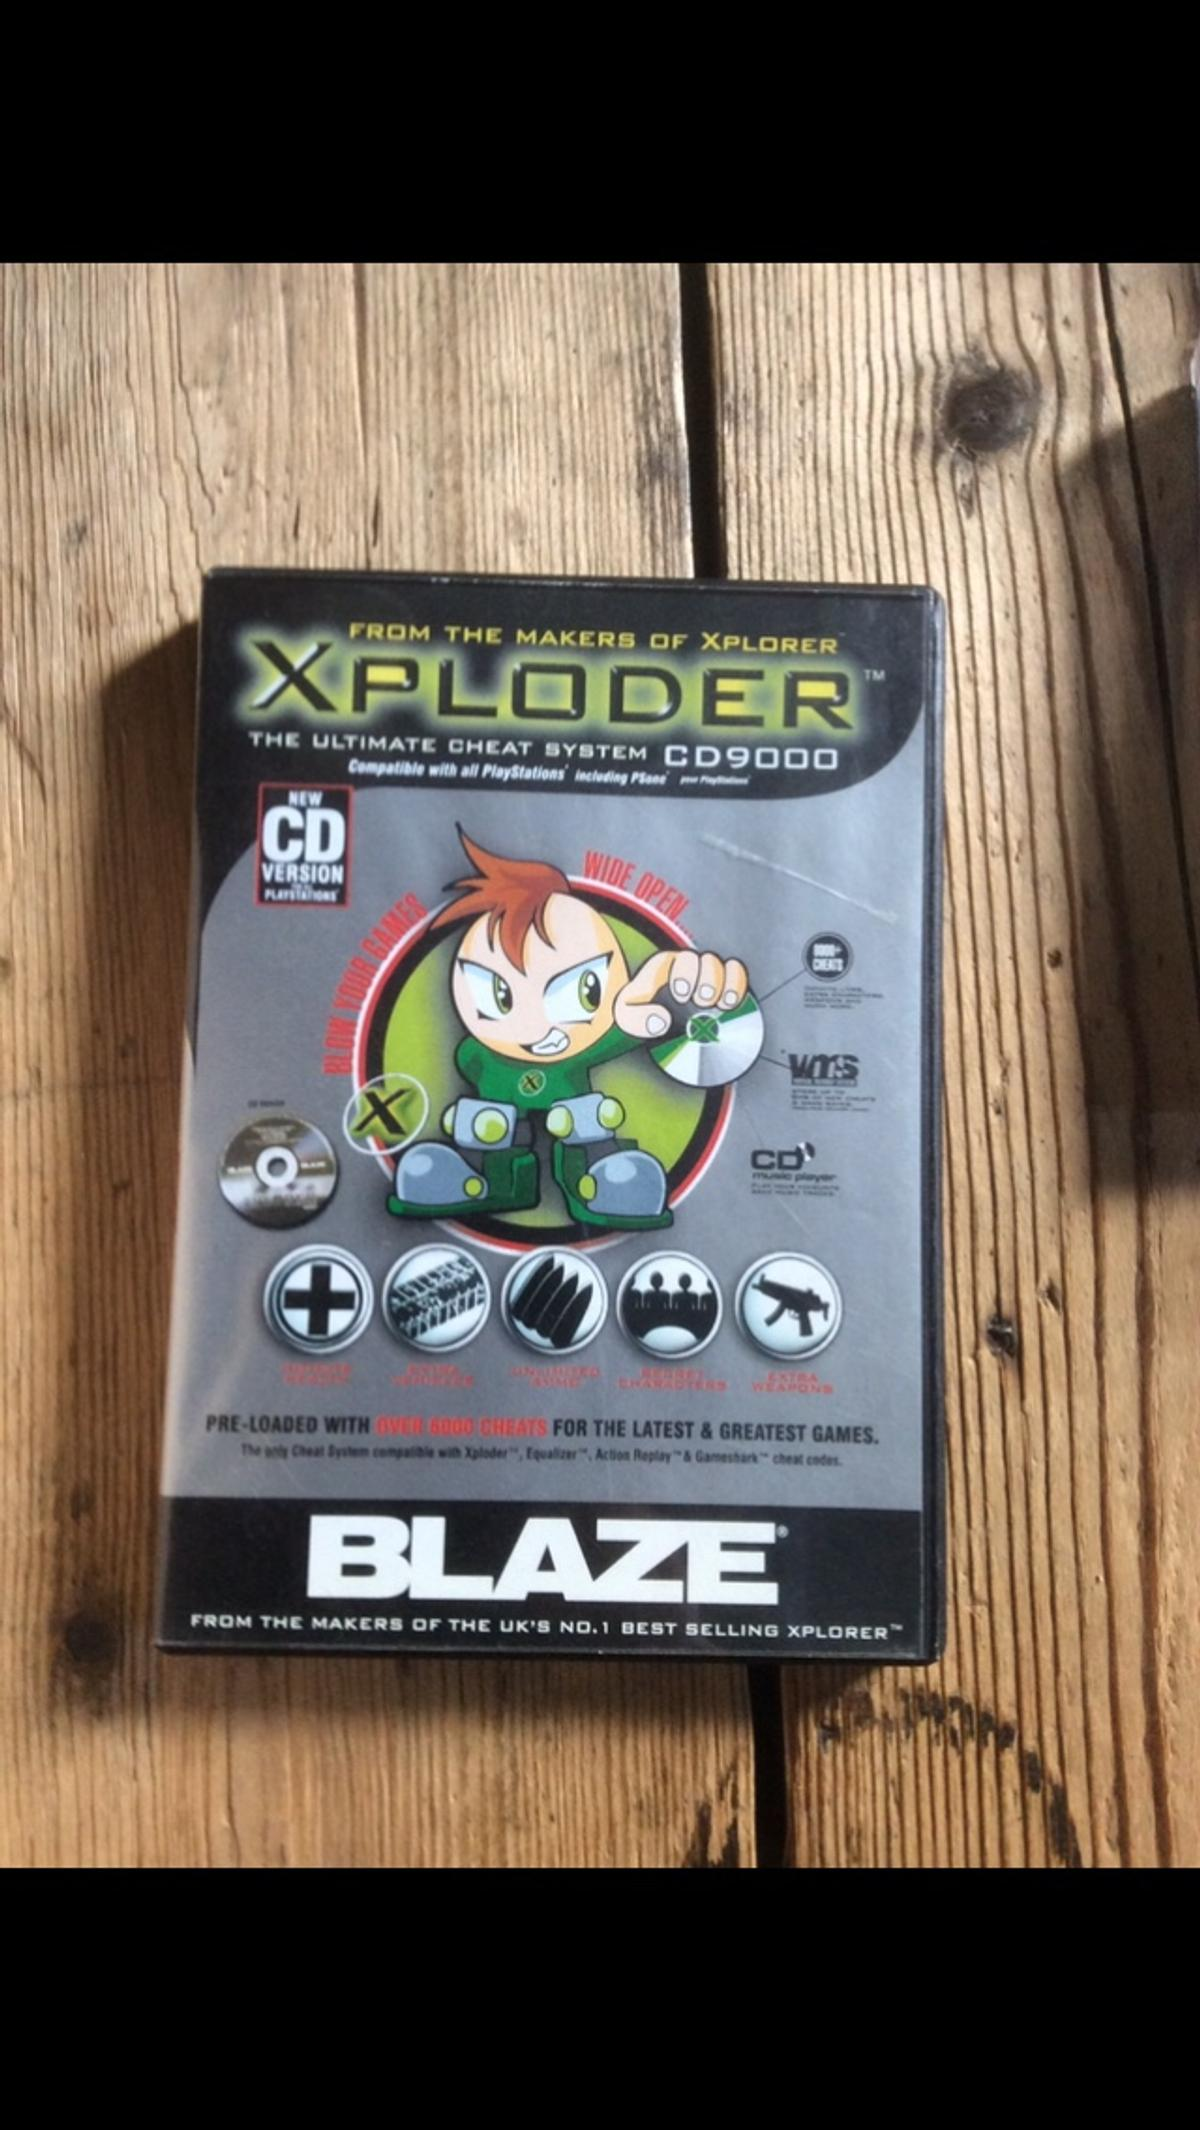 Xploder Cheat System CD for PS1 PS2